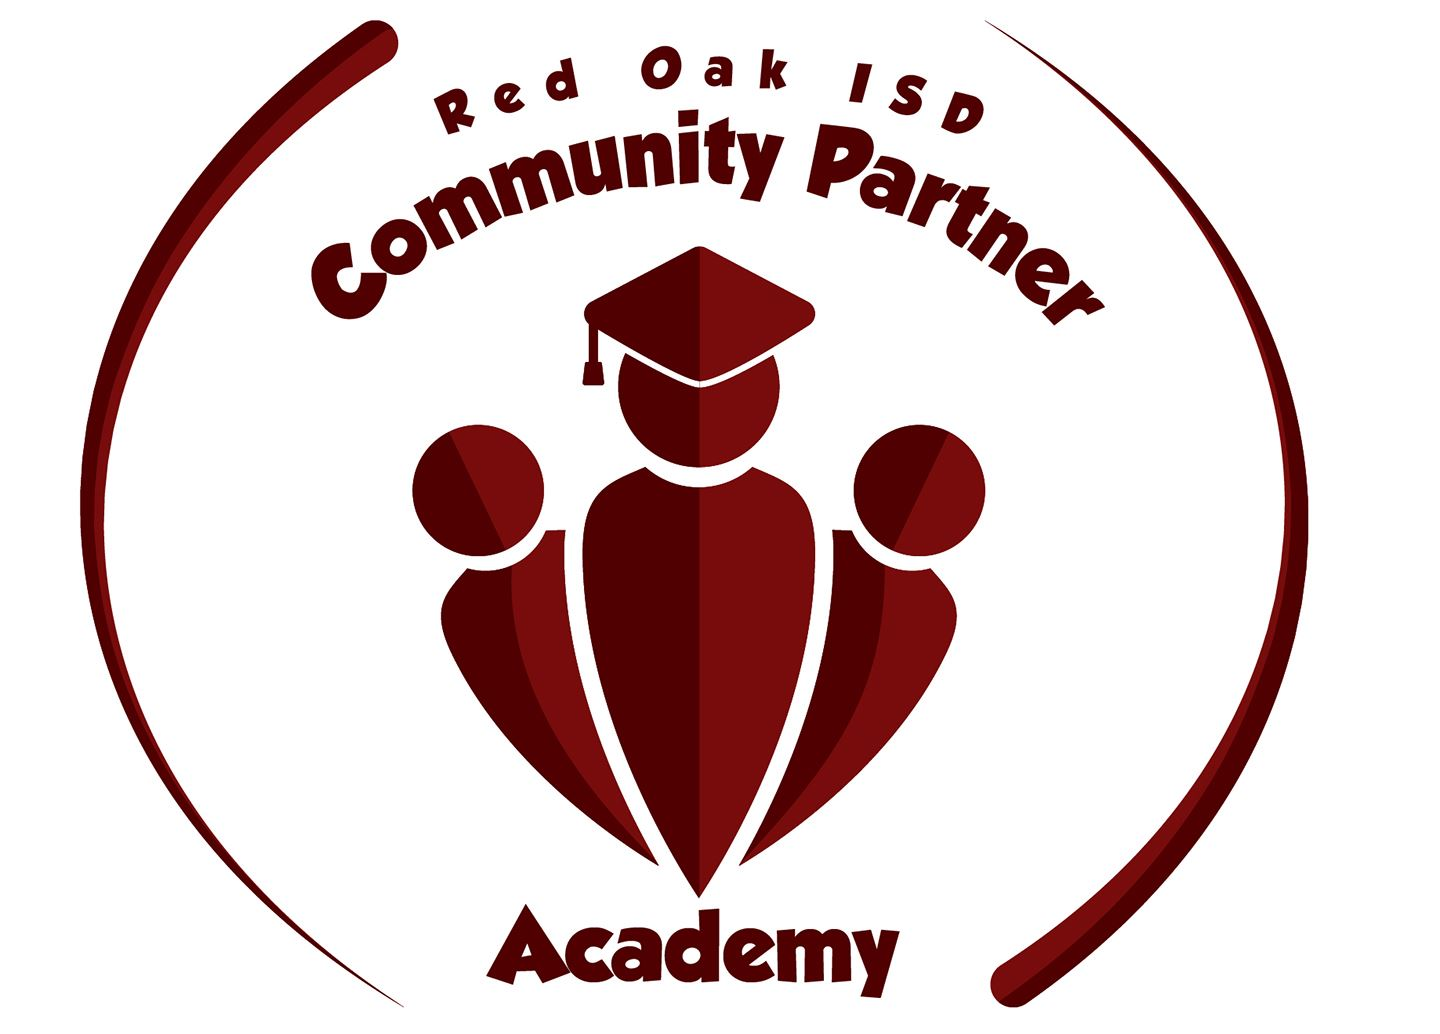 Community Partner Academy